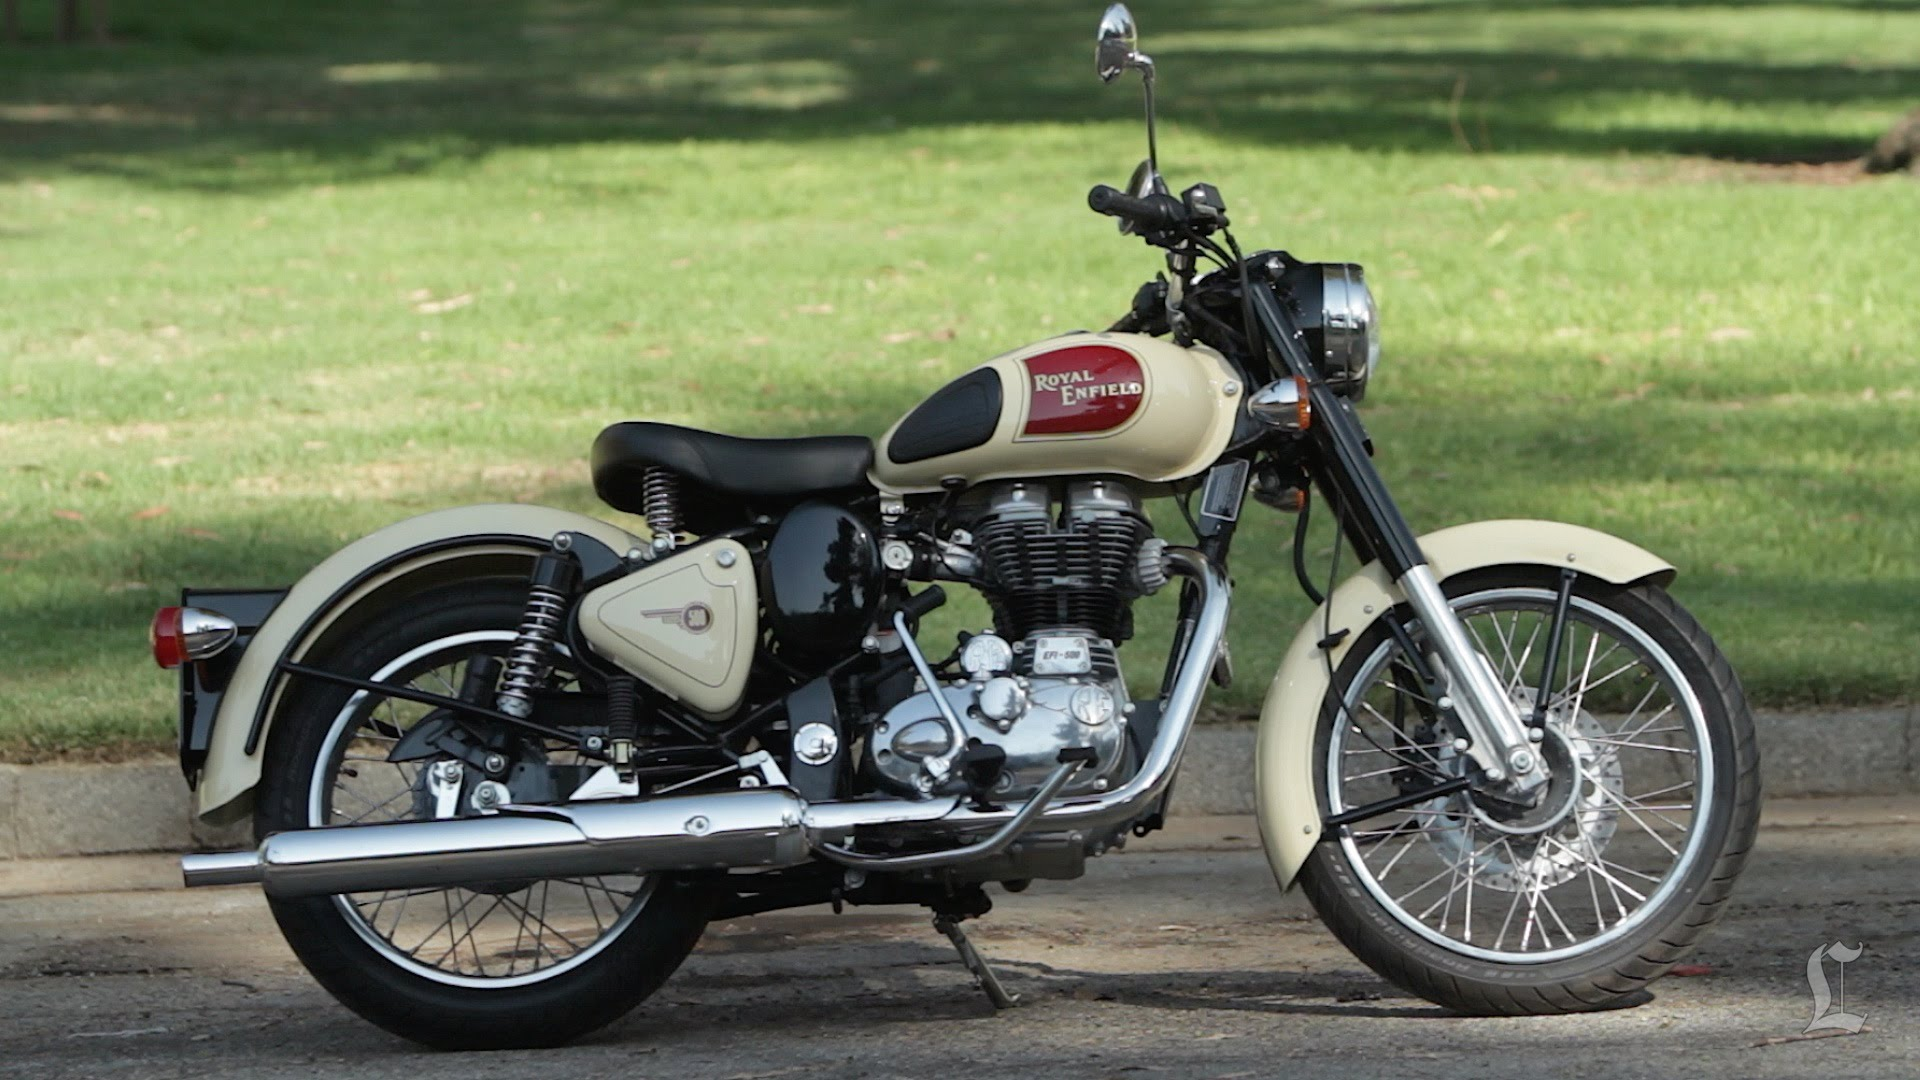 Royal Enfield Bullet 500 Army 2006 images #123605